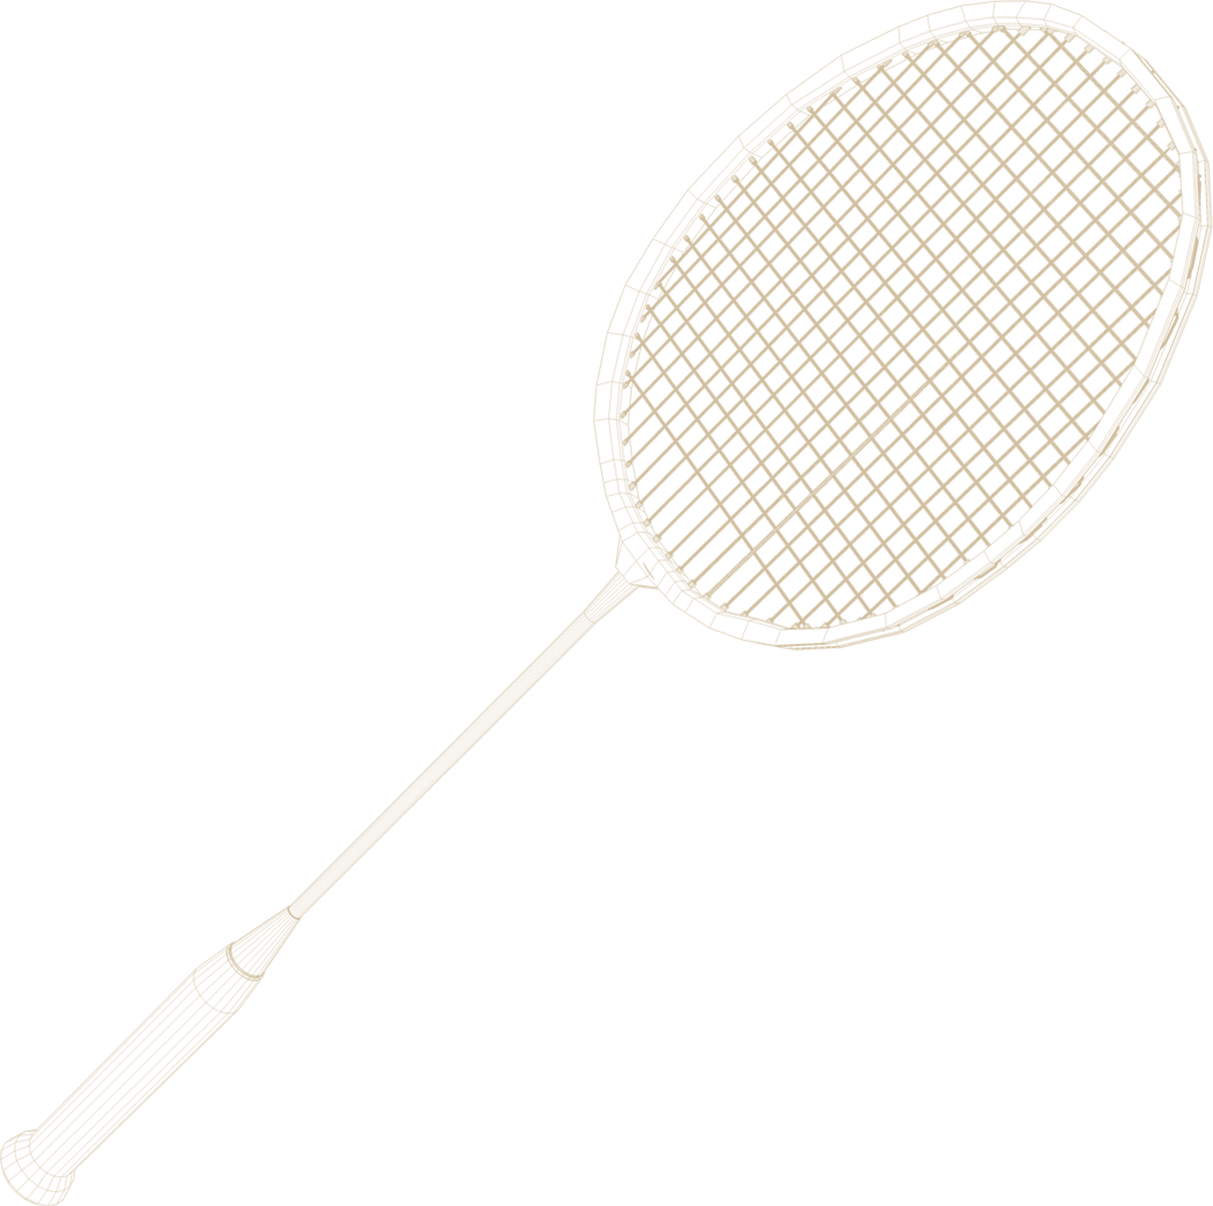 Yonex Legends - home/yonex-legends_home_parallax-object-00